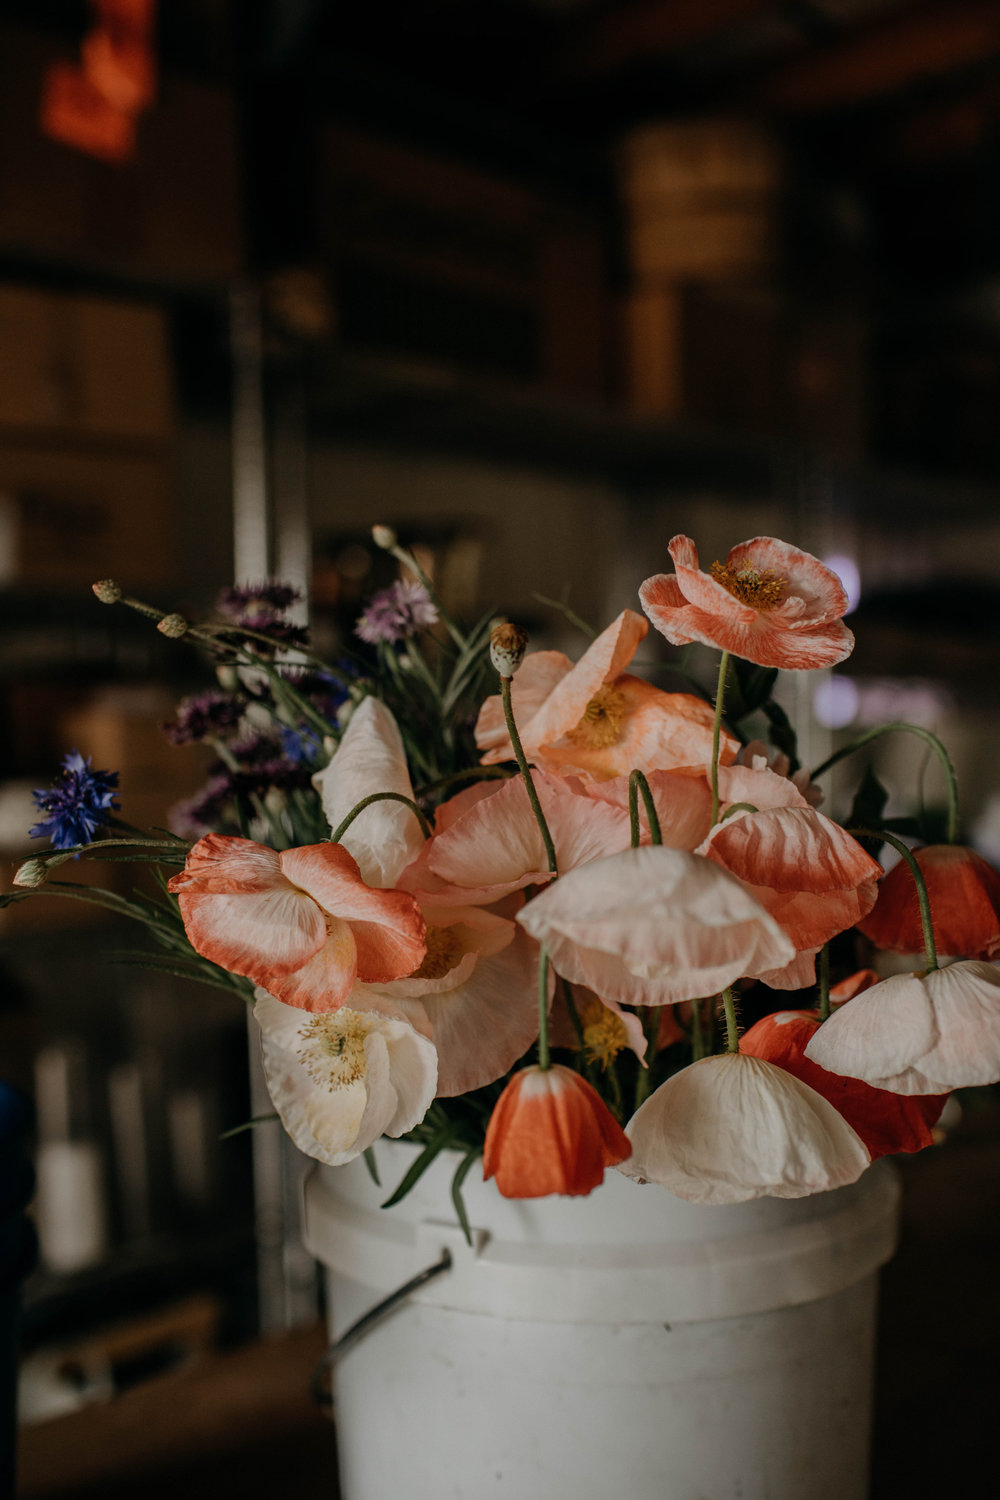 nashville floral workshop nashville tennessee wedding photographer38.jpg